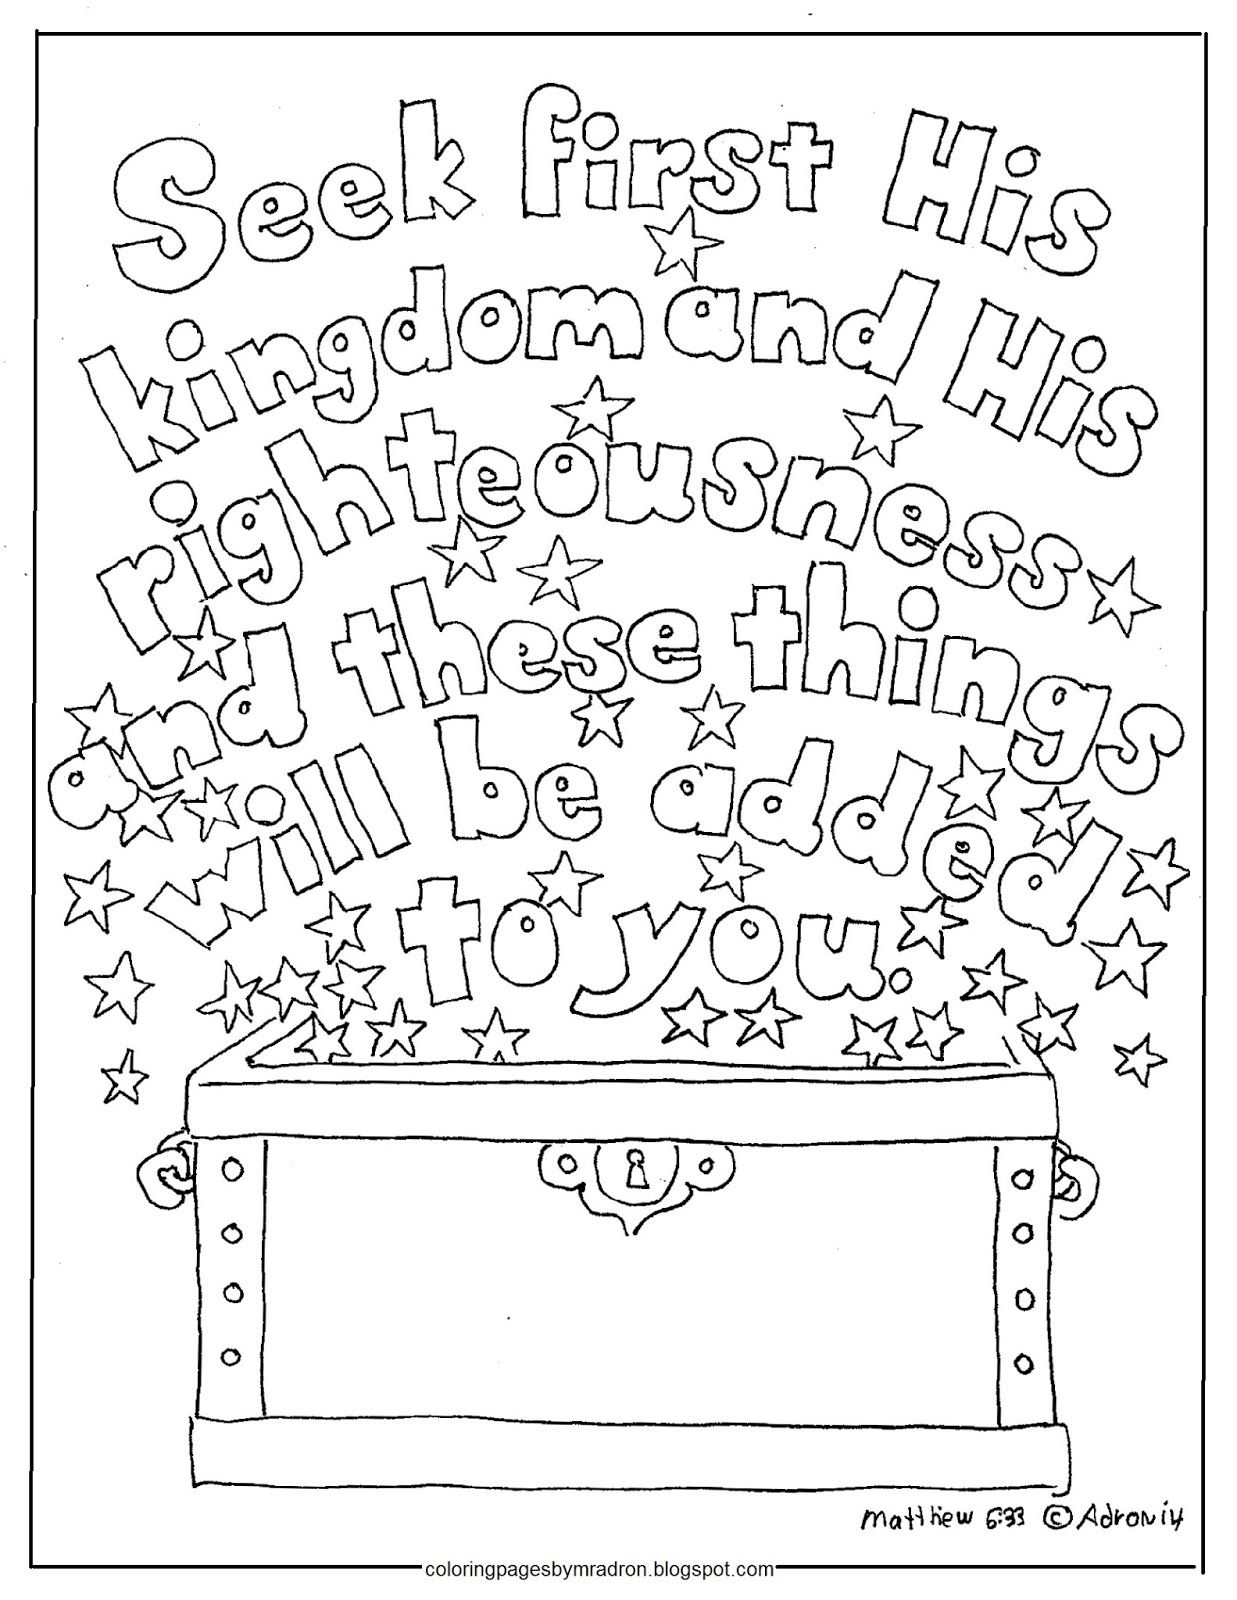 Matthew 2b6 33 Jpg With Images Free Kids Coloring Pages Bible